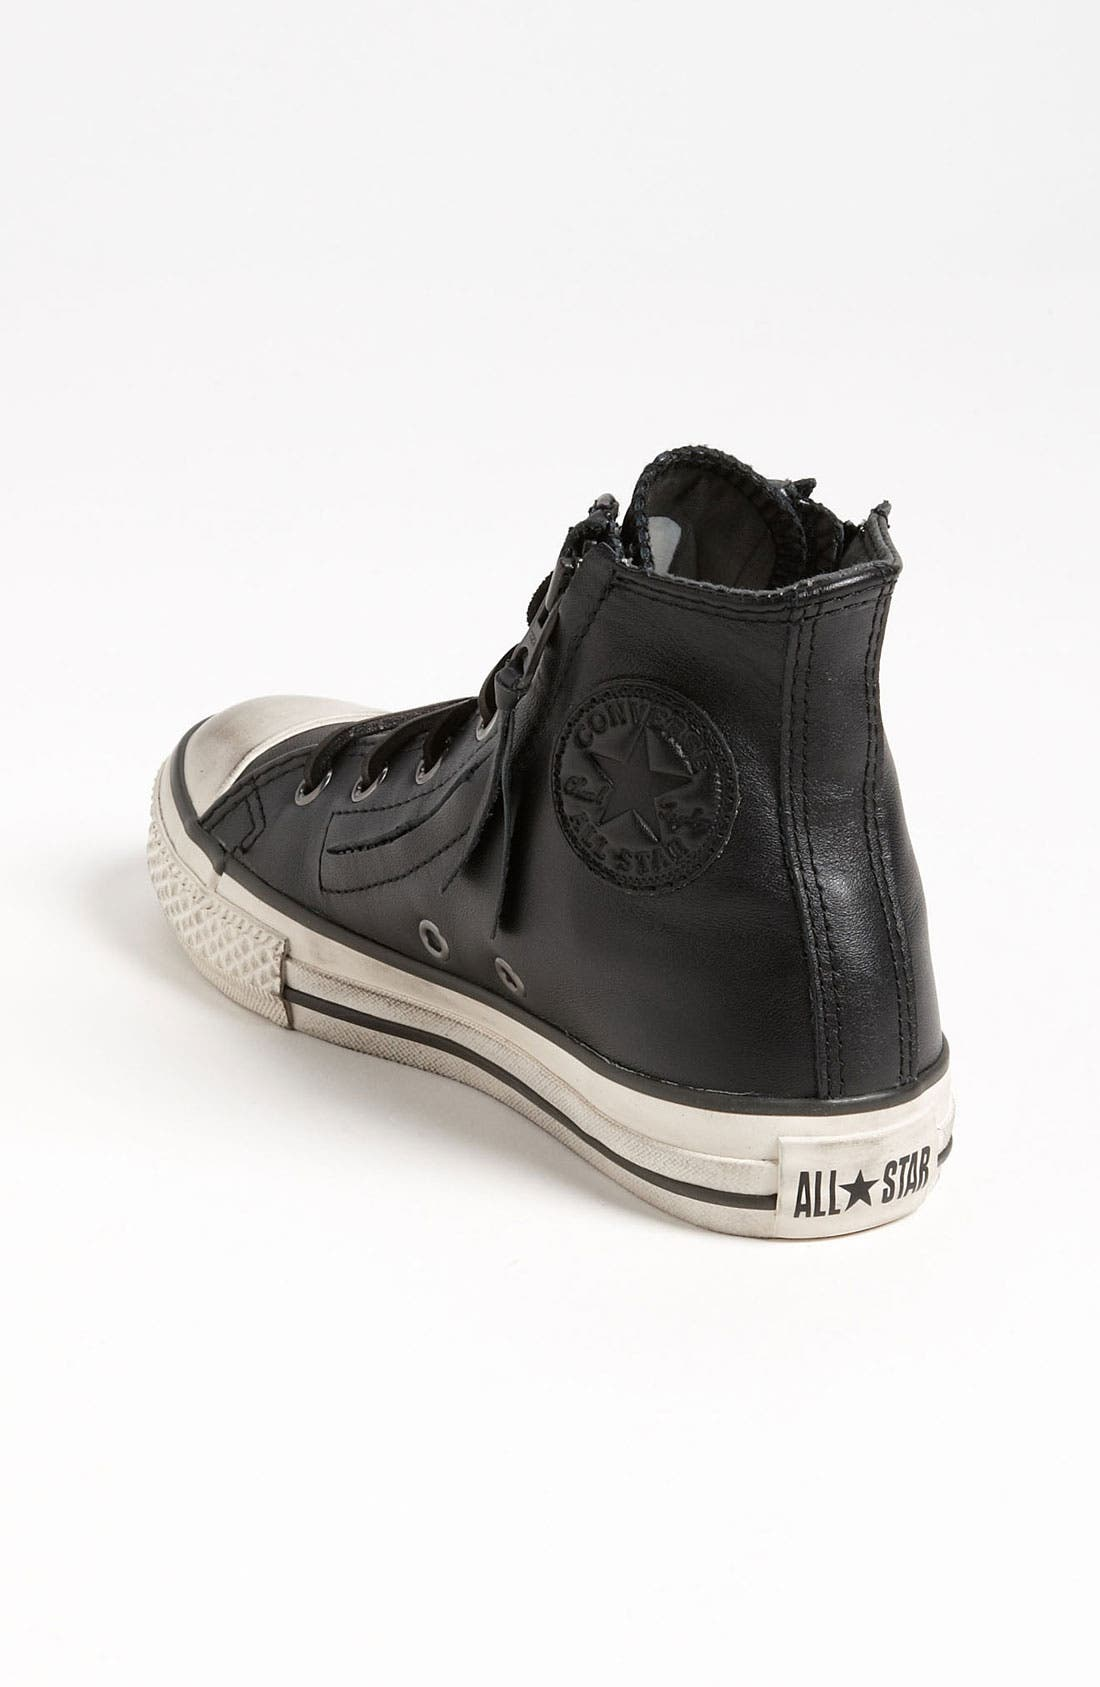 Alternate Image 2  - Converse by John Varvatos 'Double Zip' High Top Sneaker (Toddler, Little Kid & Big Kid)